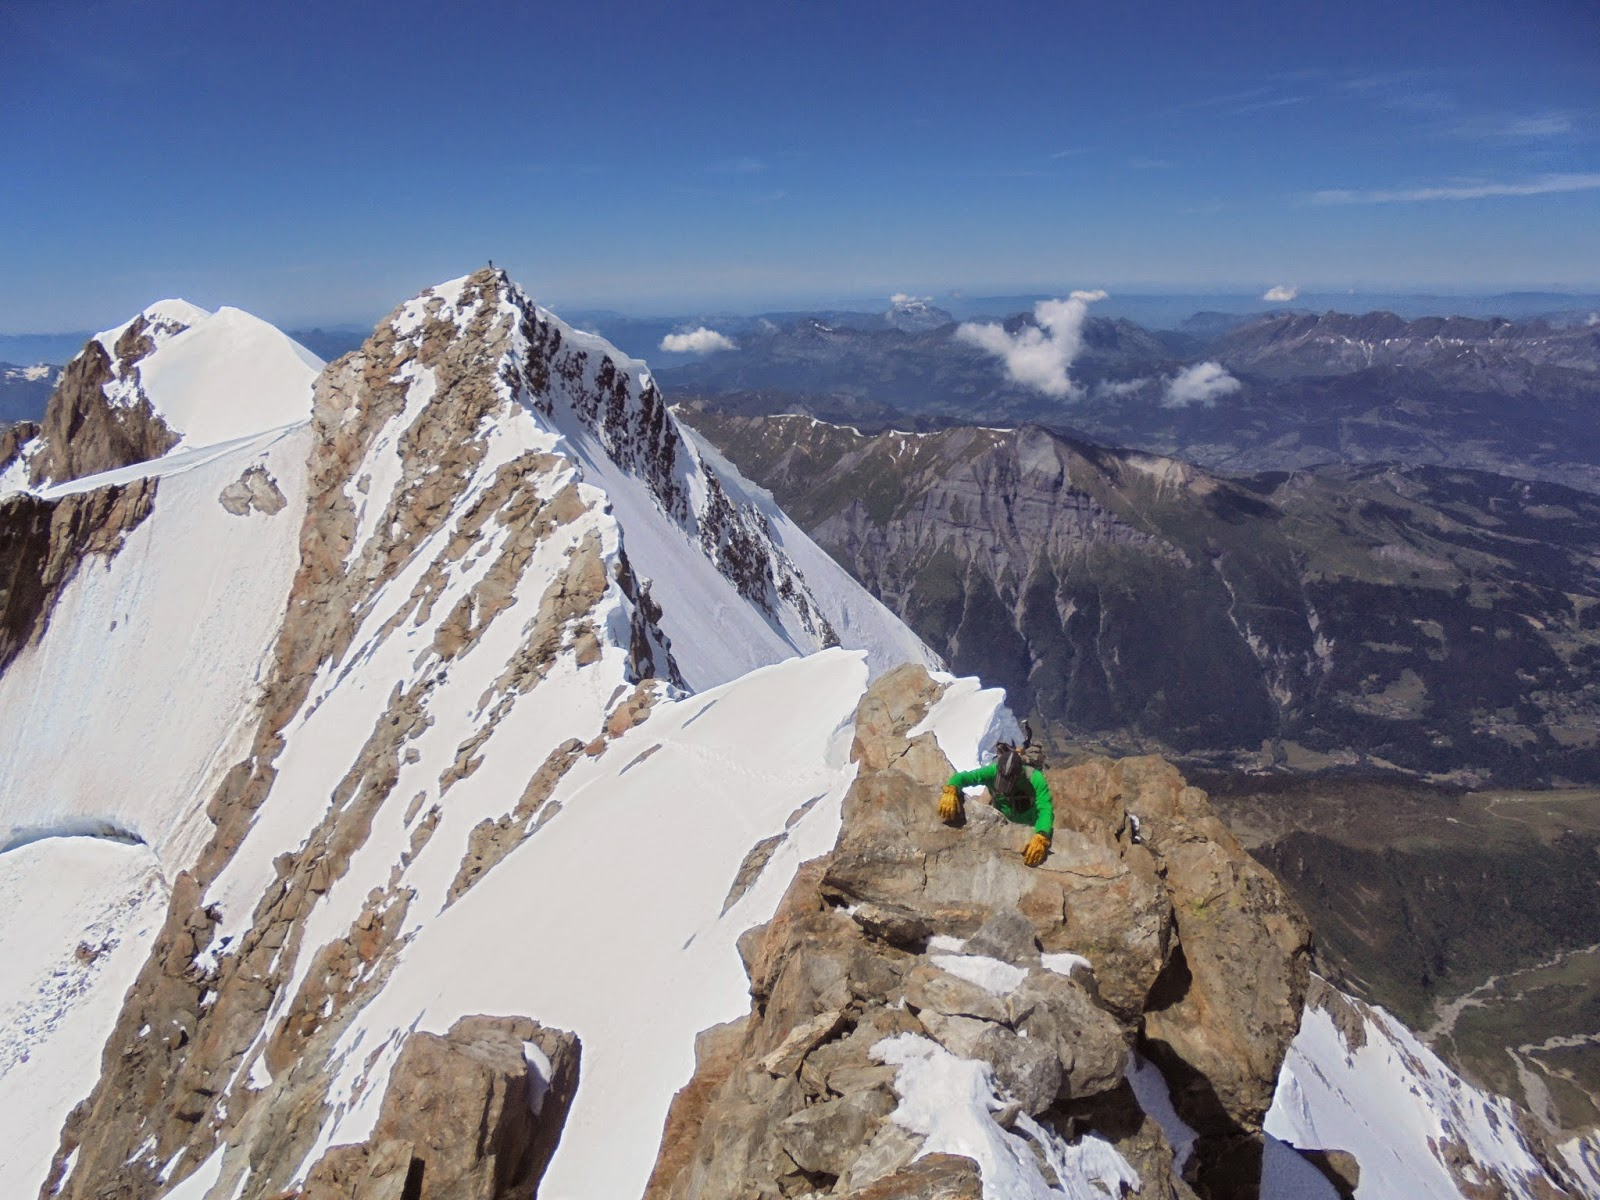 Climbing in the Mont Blanc Massif.